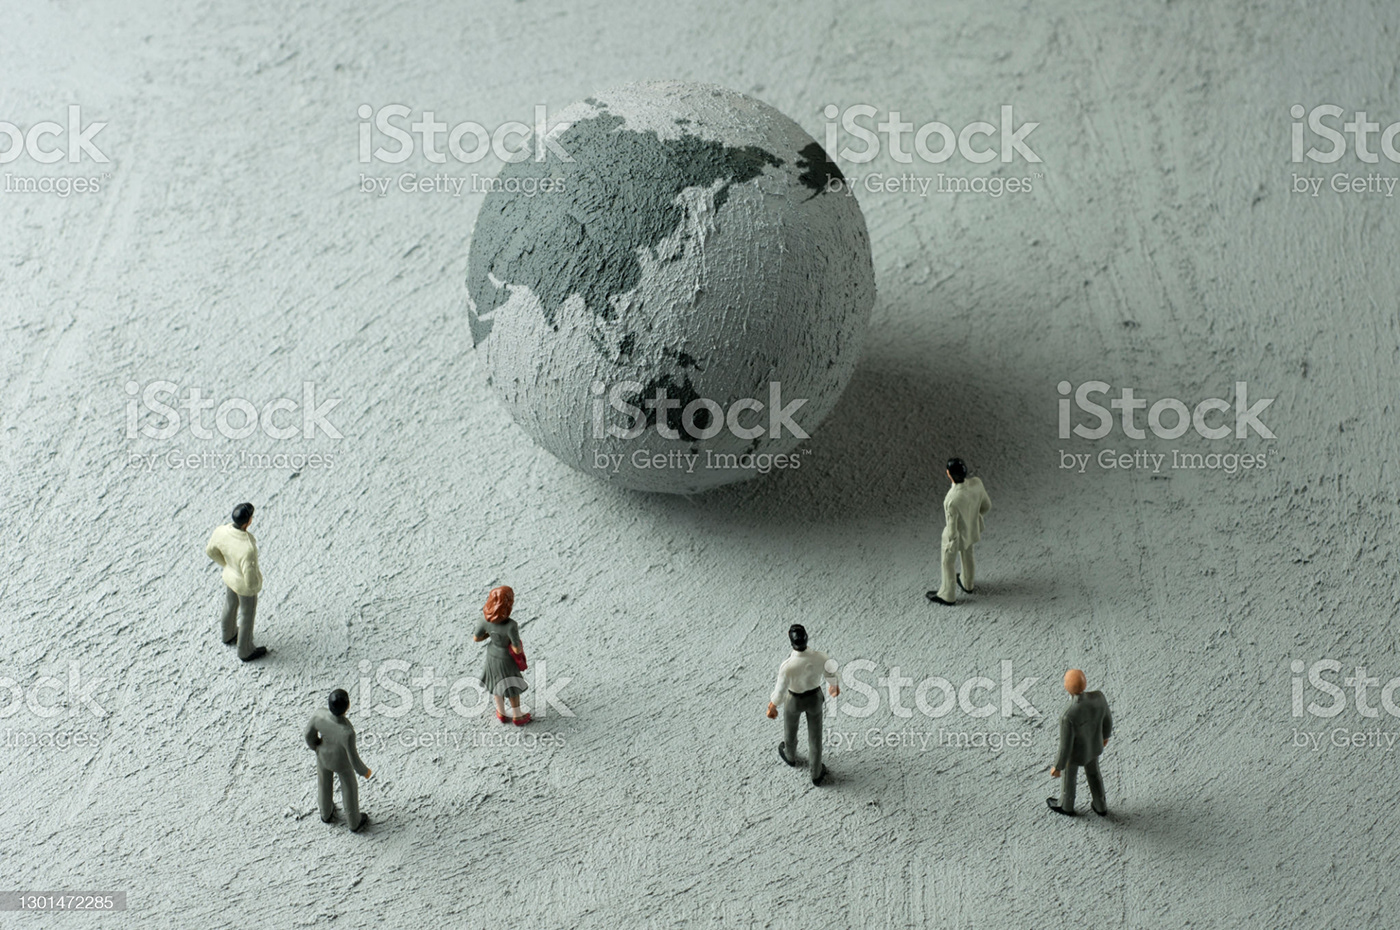 business business person Corporate Hierarchy economy figurine Global risk strategy TEAMWORK